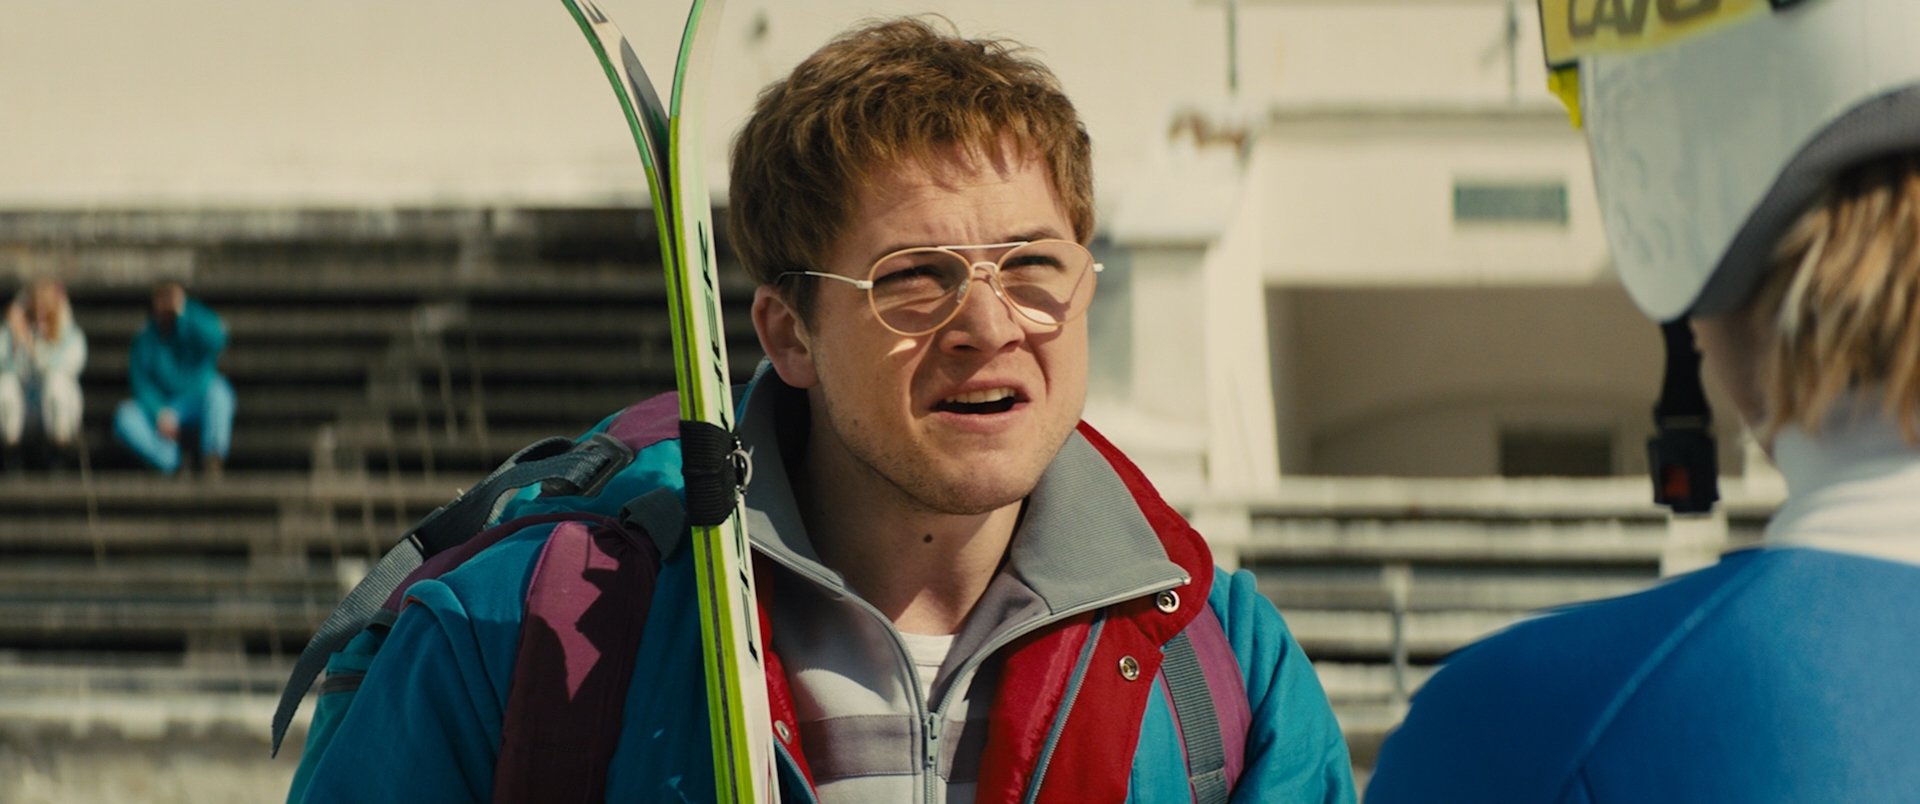 Эдди «Орел» — Eddie the Eagle (2016)  BDRip 1080p